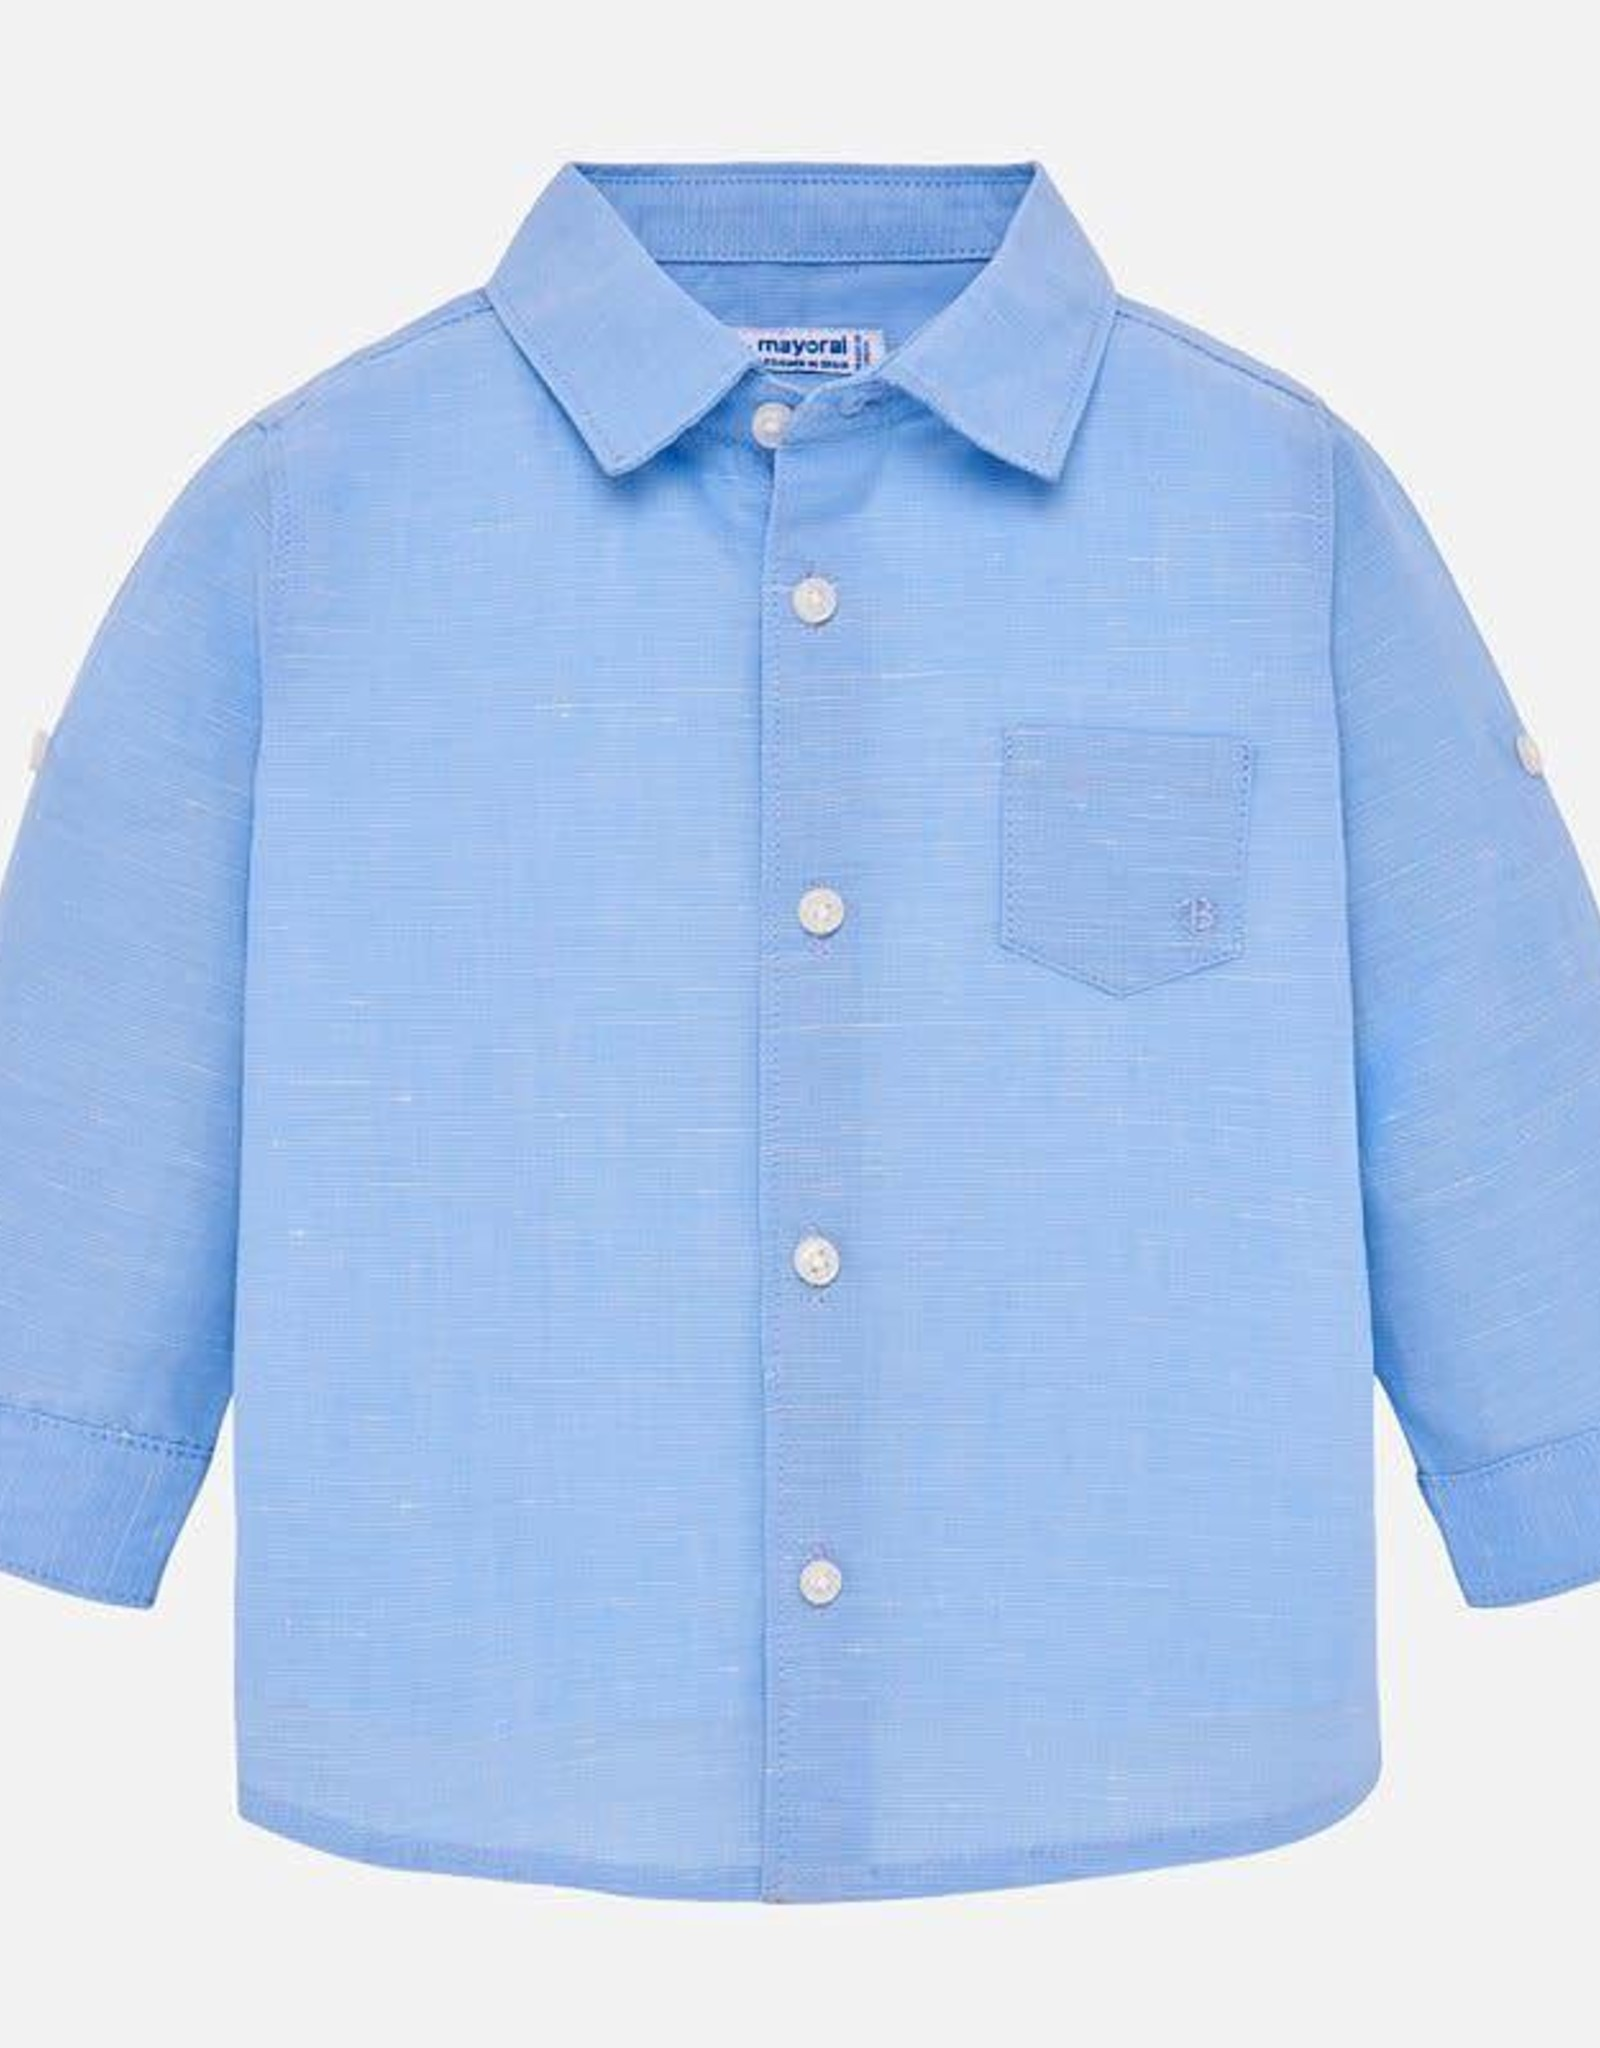 Mayoral Long Sleeve Linen Shirt in Sky Blue